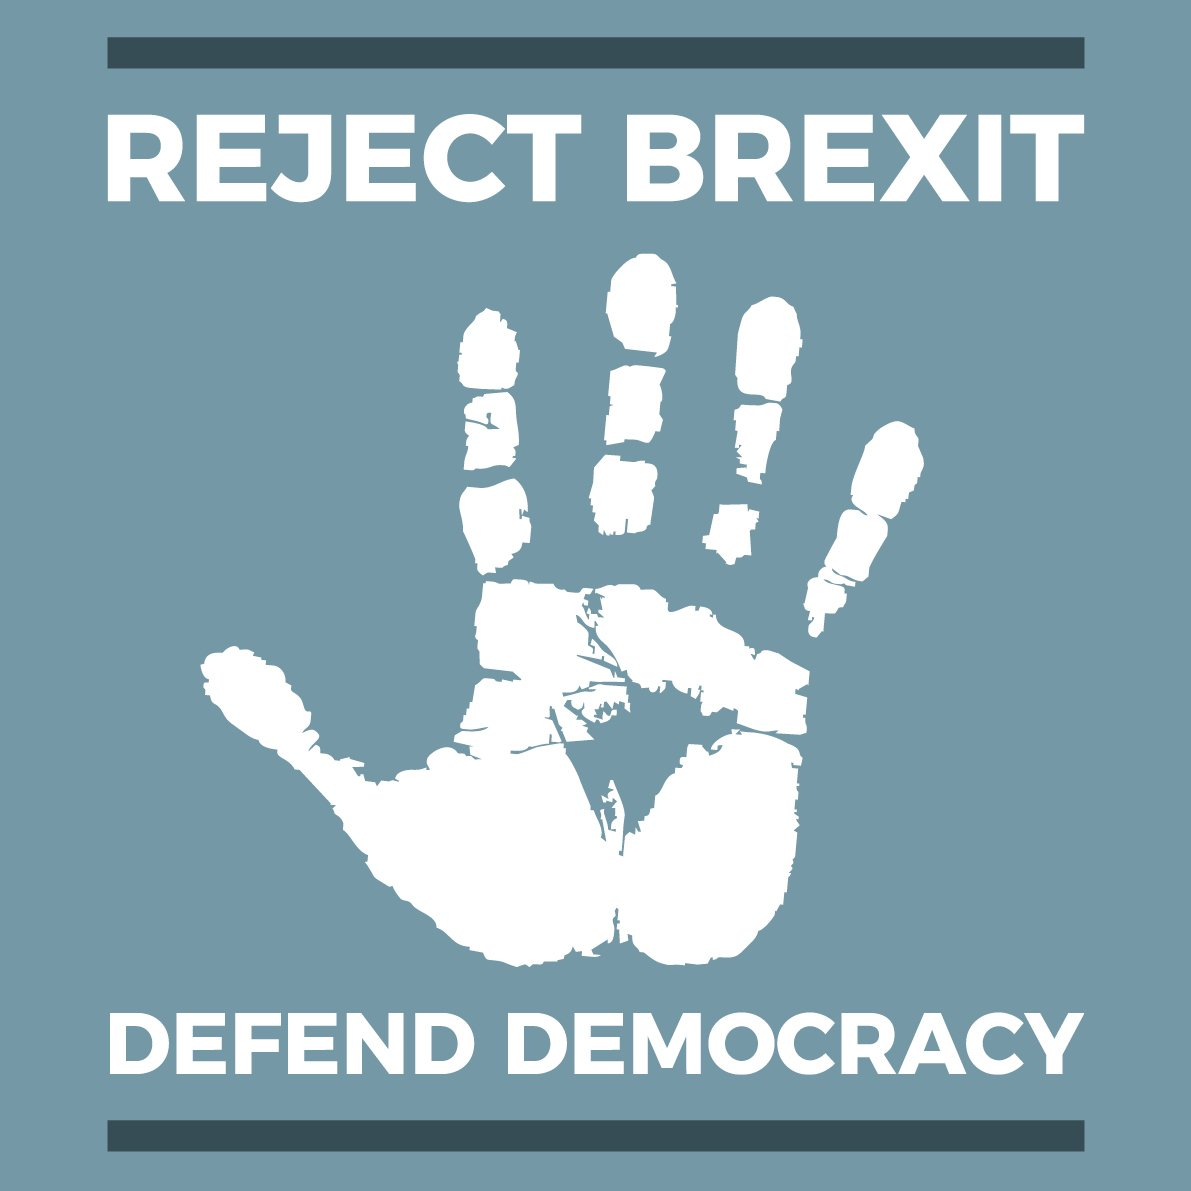 **Johnson will be in Rotherham this Friday**  It seems our unelected & undemocratic Prime Minister didn't get the message last week when he visited us in Wakefield!  Join us 12pm Magna this Friday as we tell him once again to please leave our town!  #DefendDemocracy #RejectBrexit <br>http://pic.twitter.com/cmFATgja0D